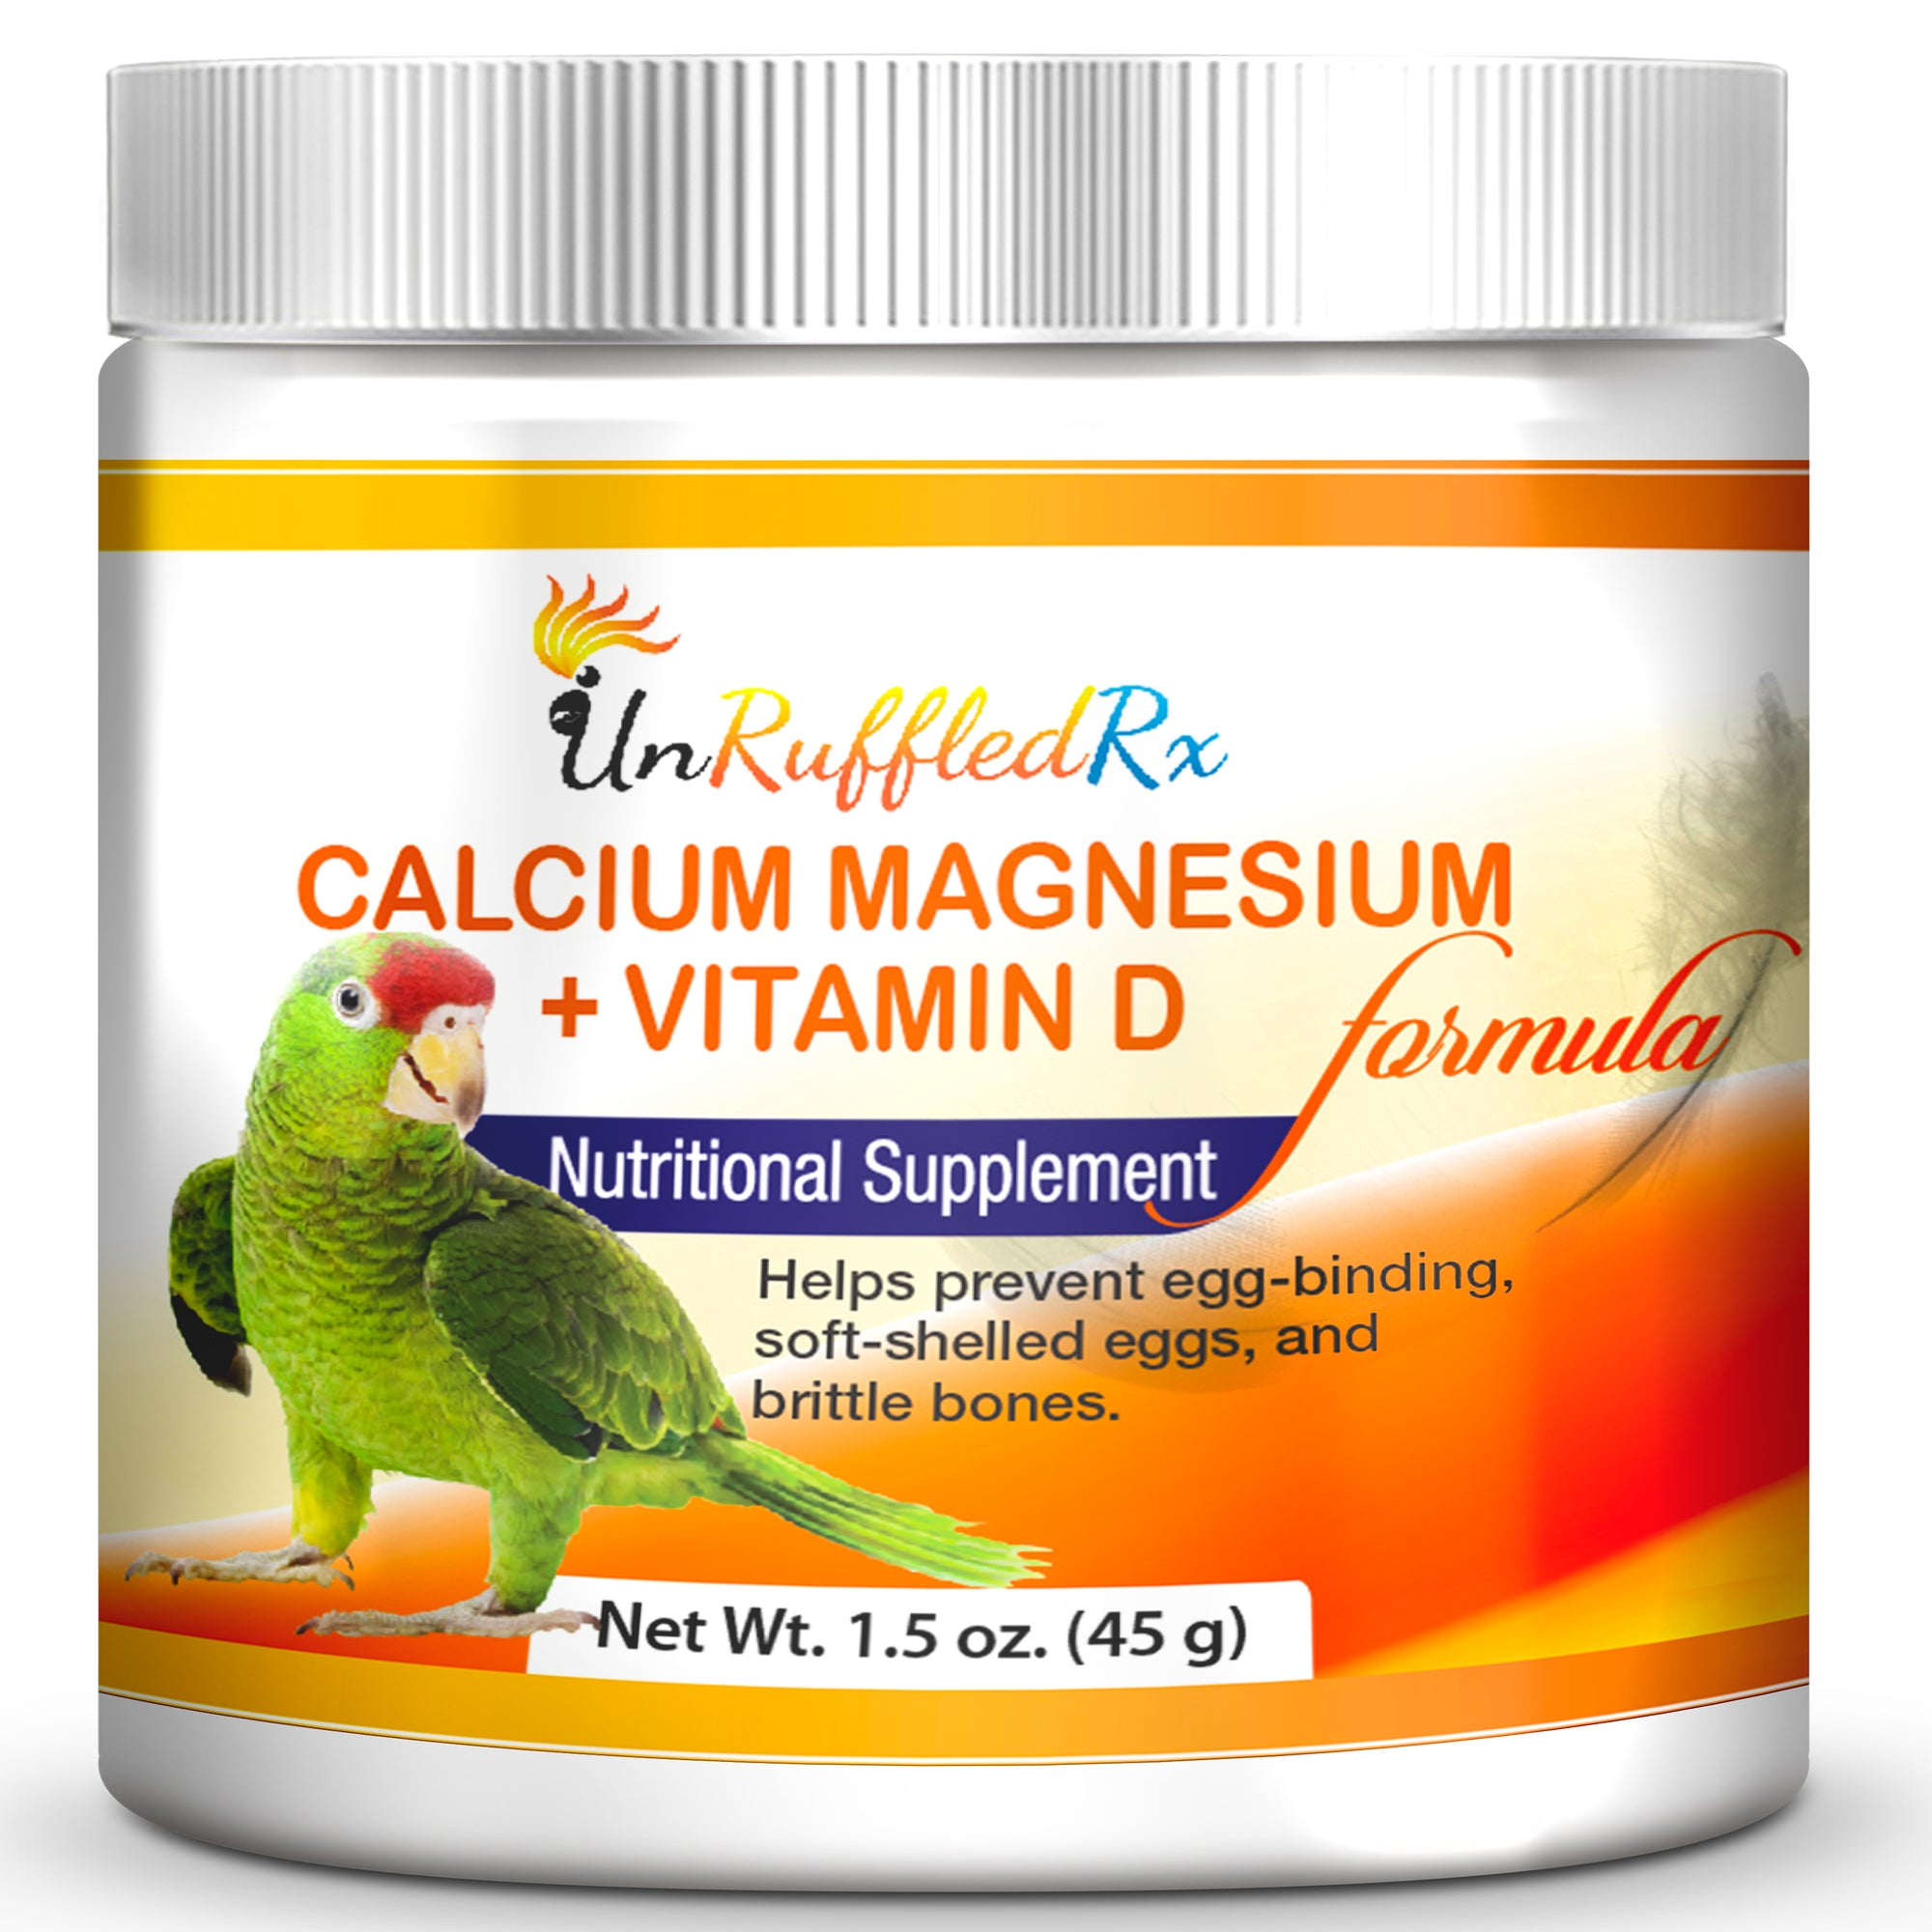 UnRuffledRx Calcium, Magnesium +D3 Parrot Calcium Supplement